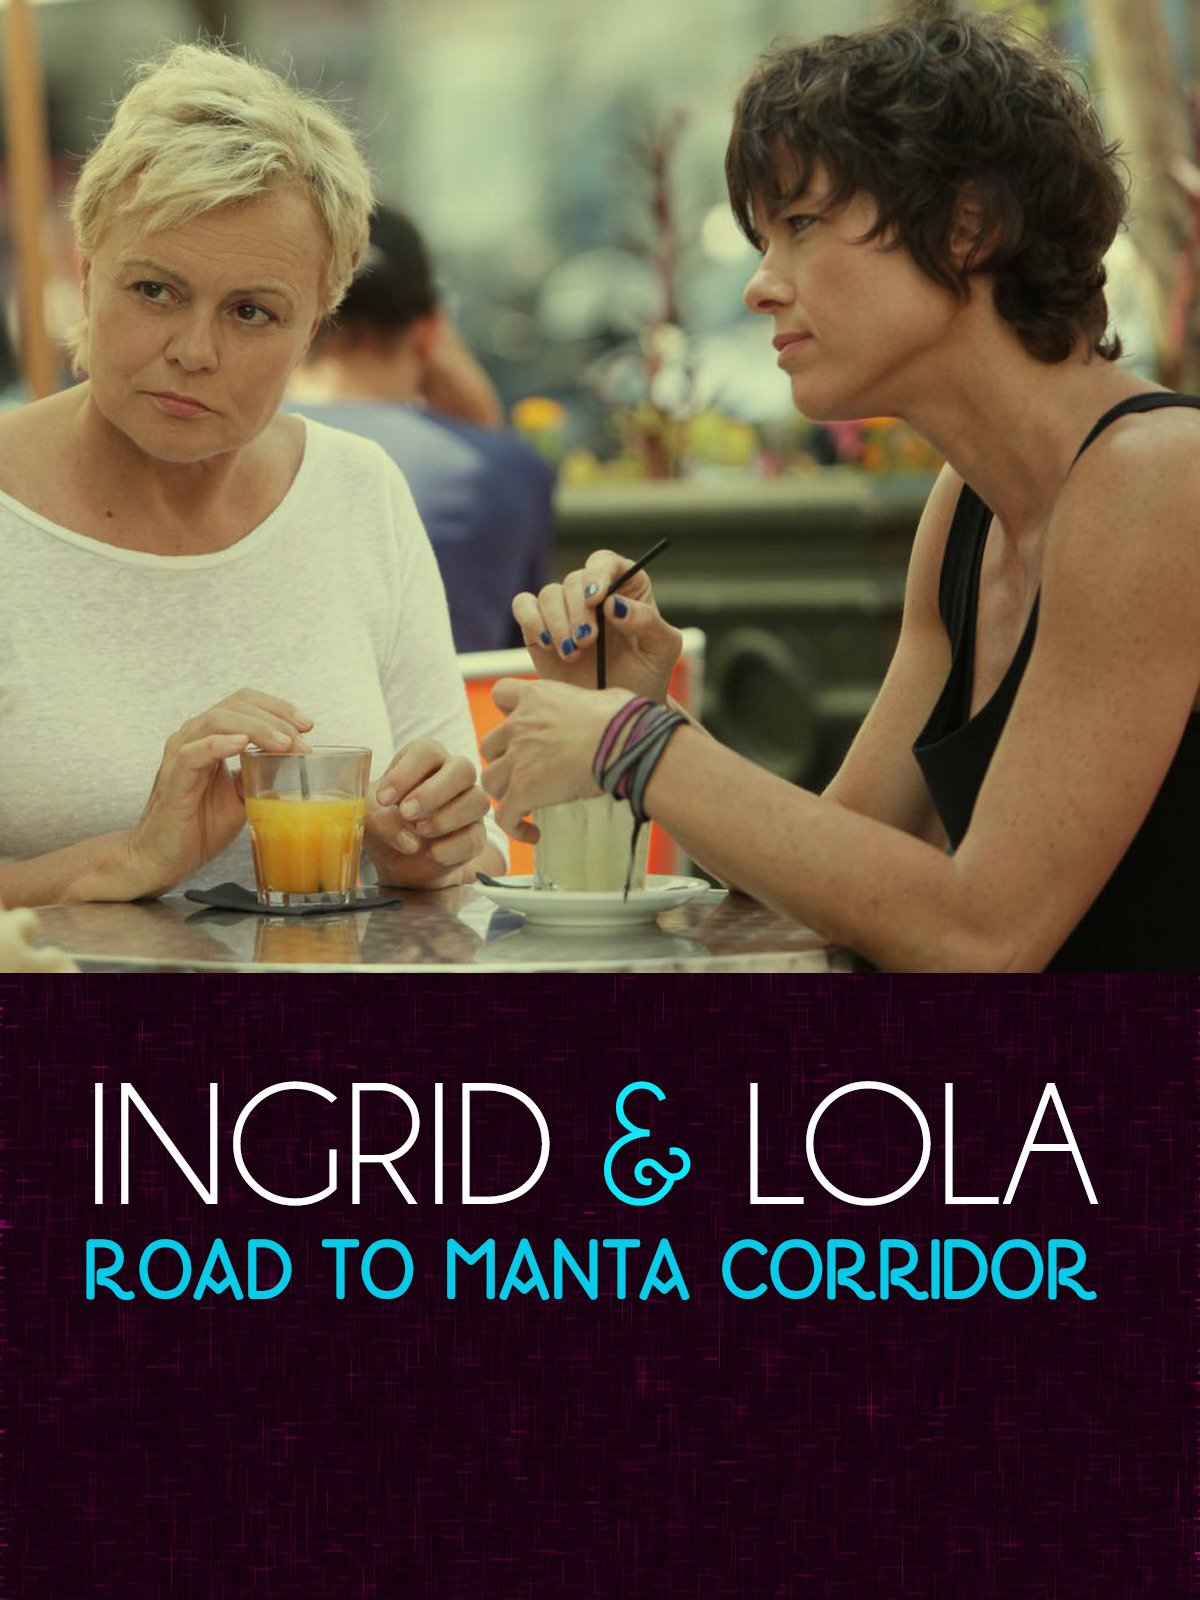 Amazon.com: Ingrid & Lola - Road to Manta Corridor: Muriel Robin, Anne Le Nen, Pascal Ternisien, Jérôme Foulon: Amazon Digital Services LLC